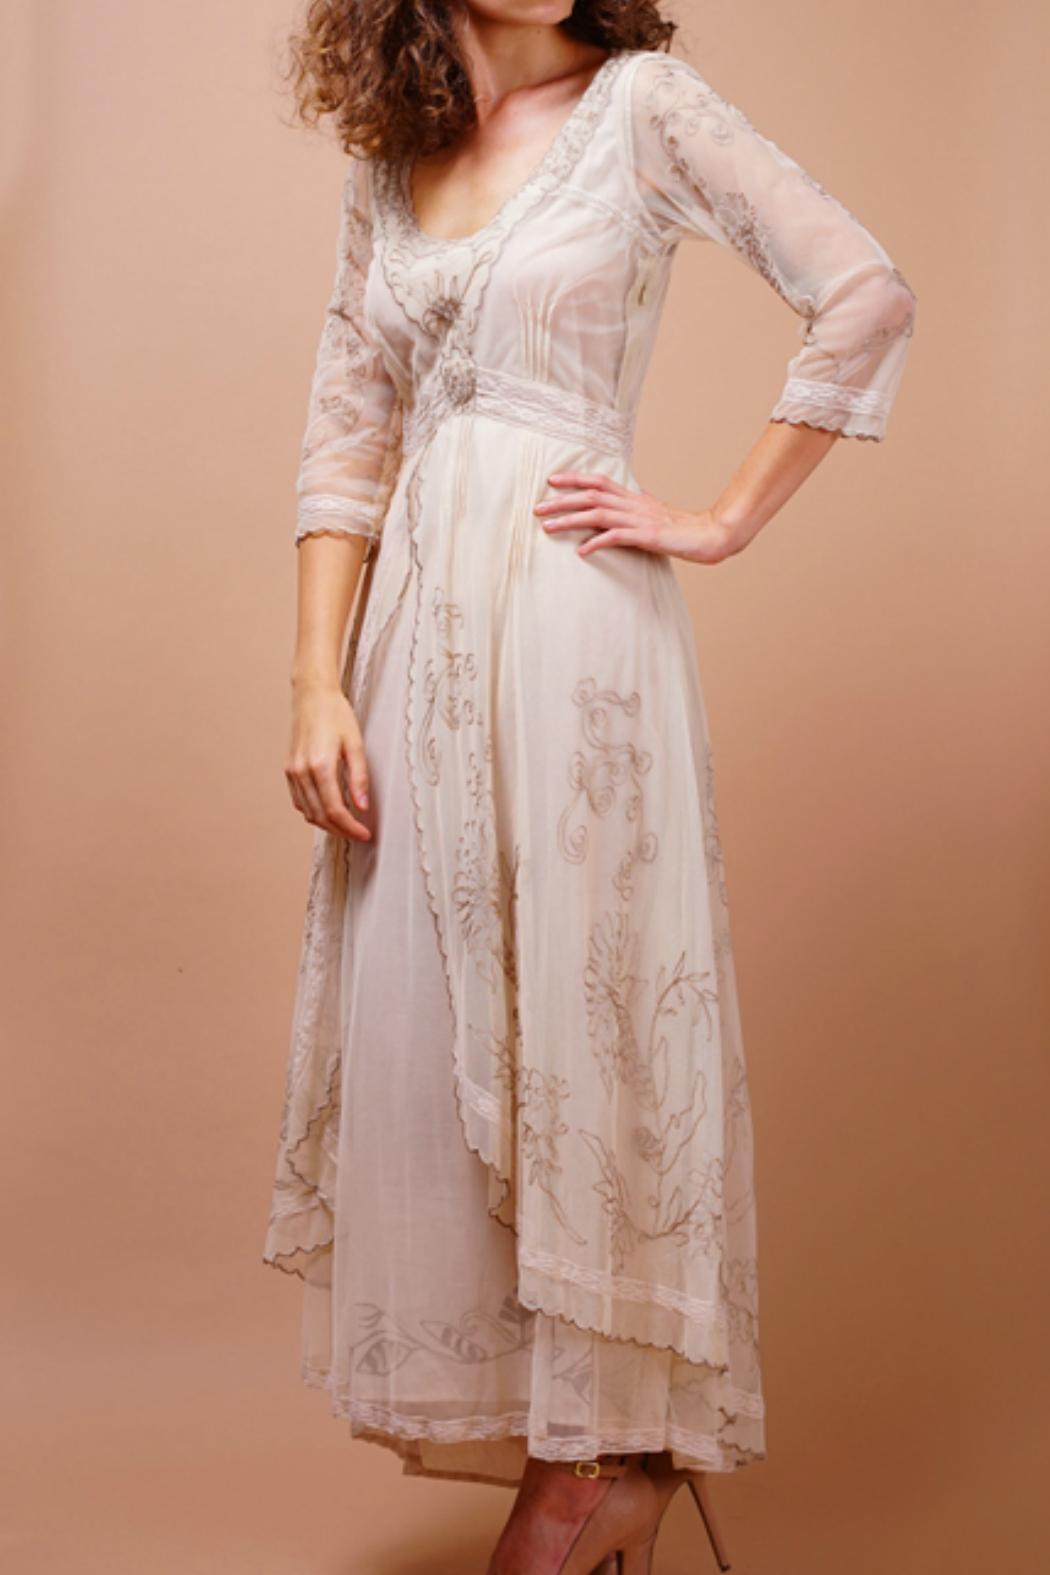 Nataya downton abbey dress from california by discover for Downton abbey style wedding dress